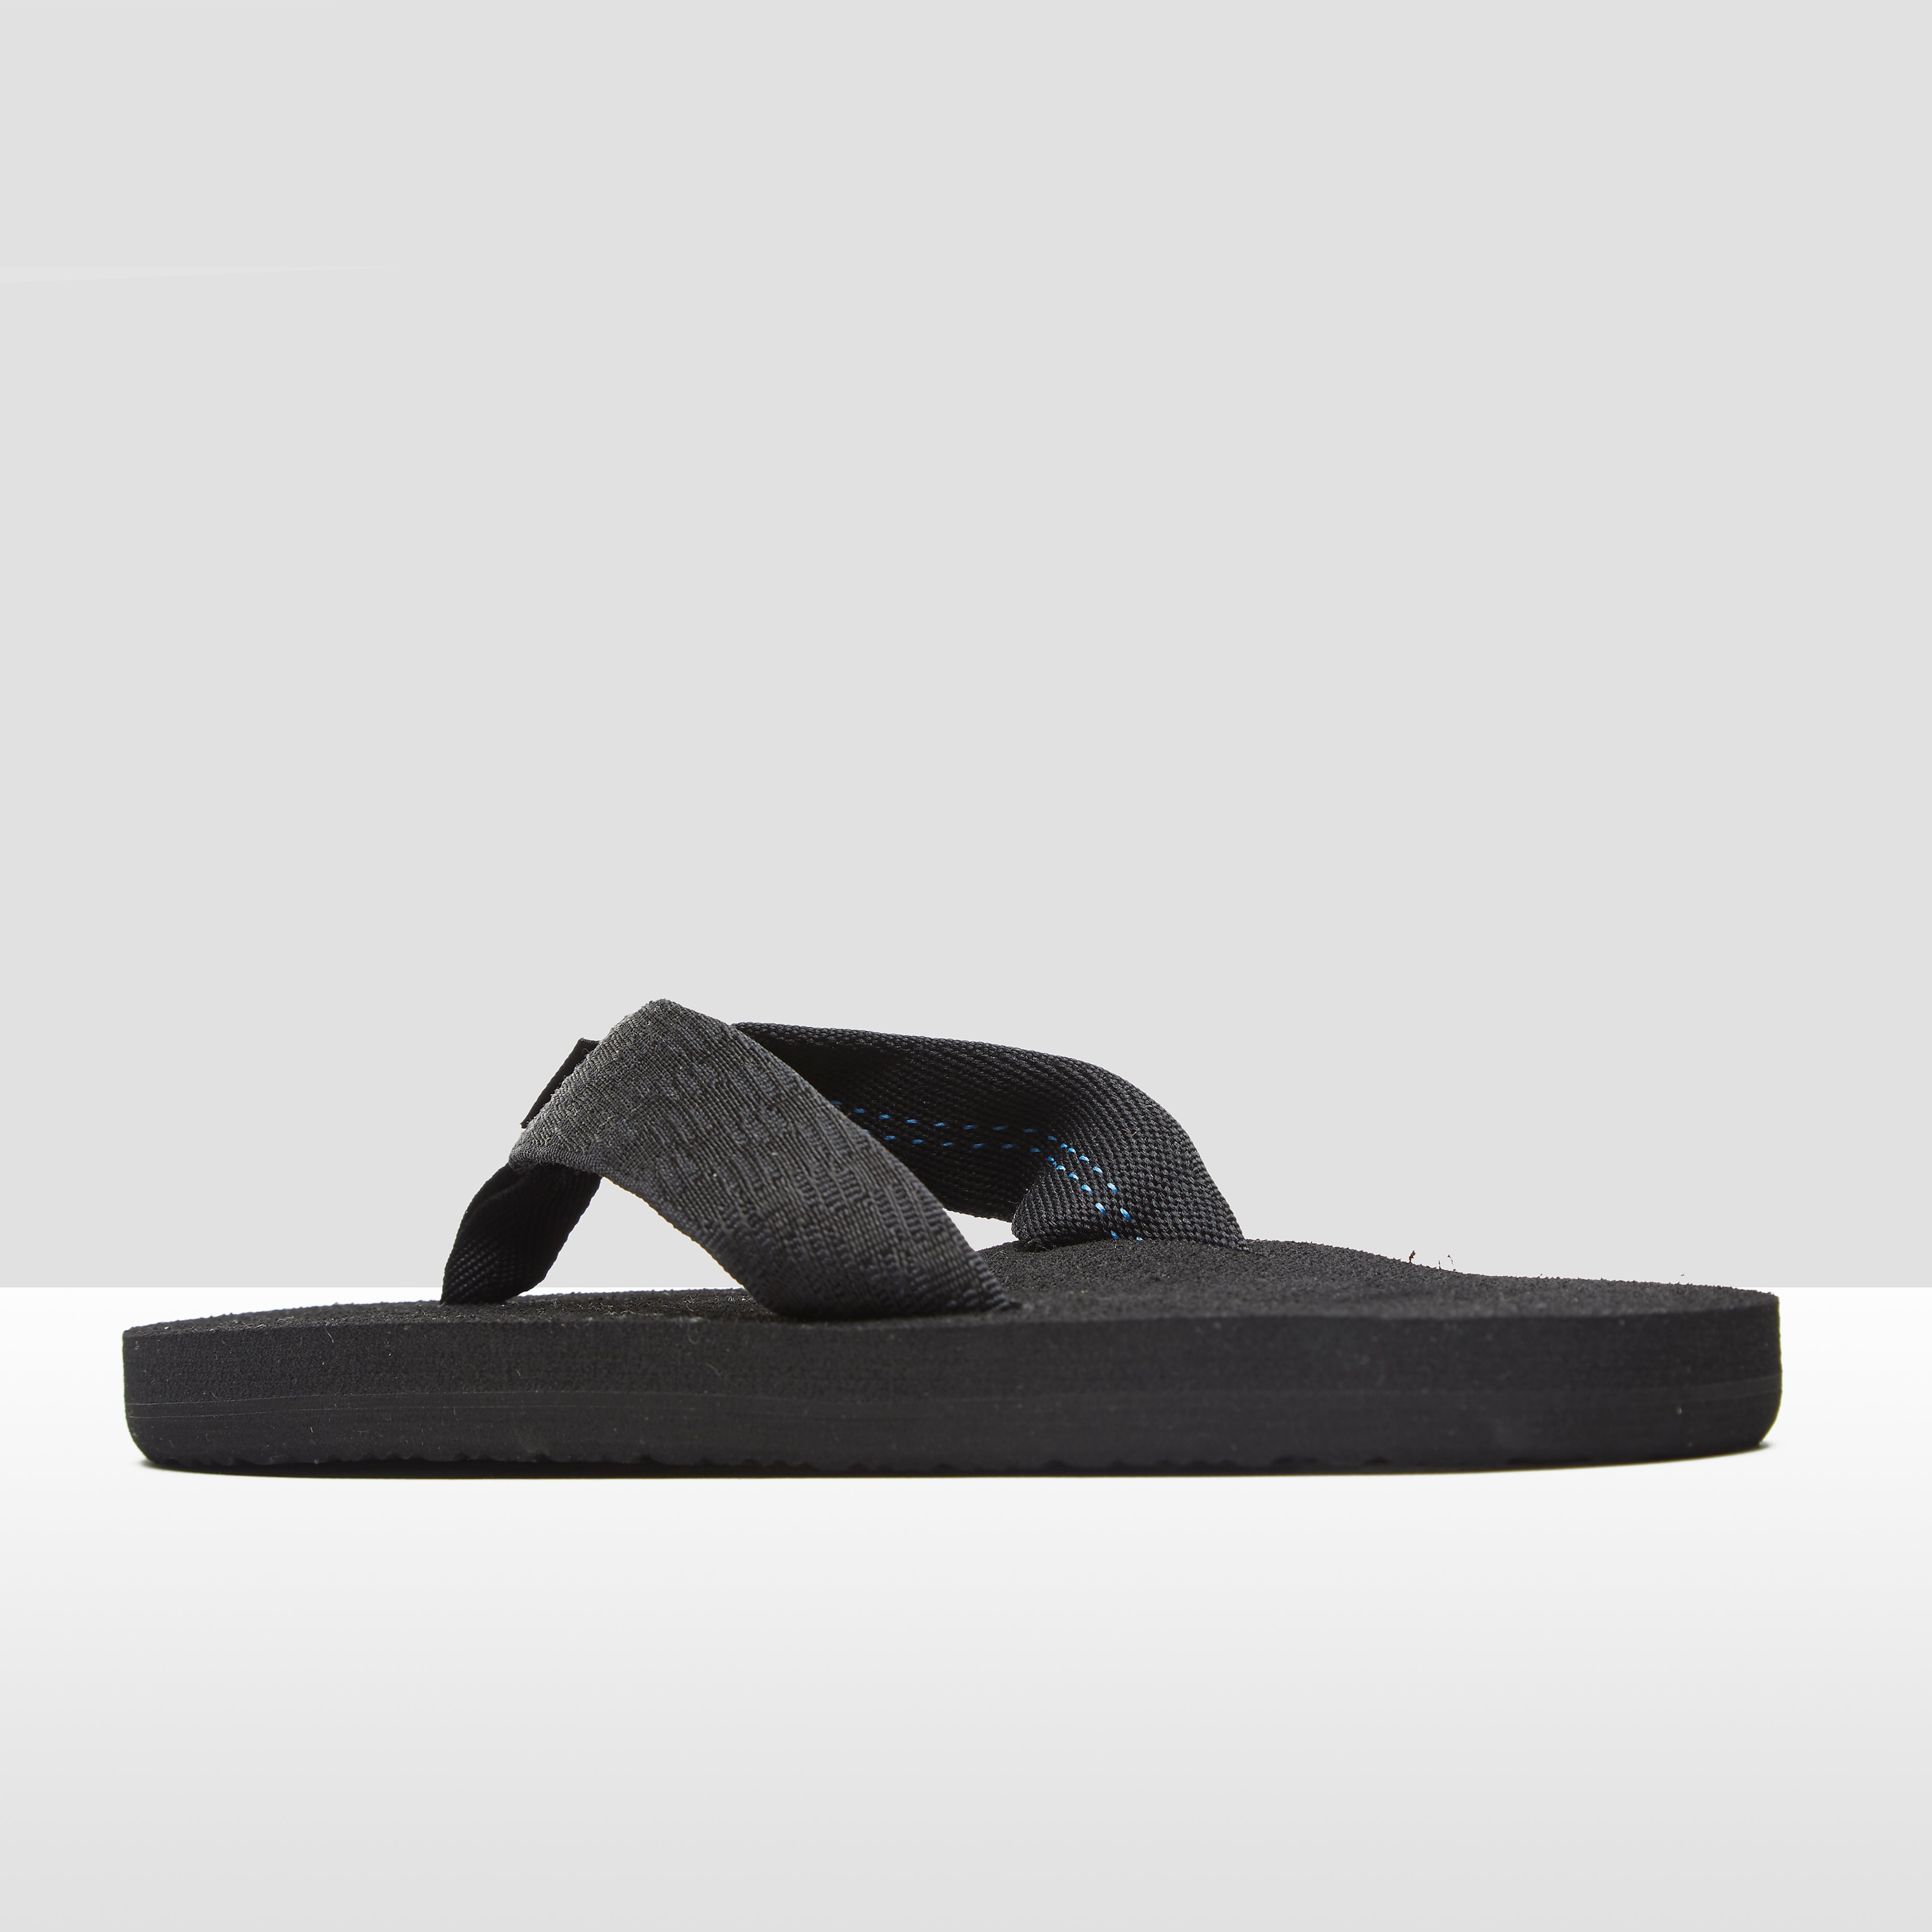 Teva MUSH II Men's Sandals